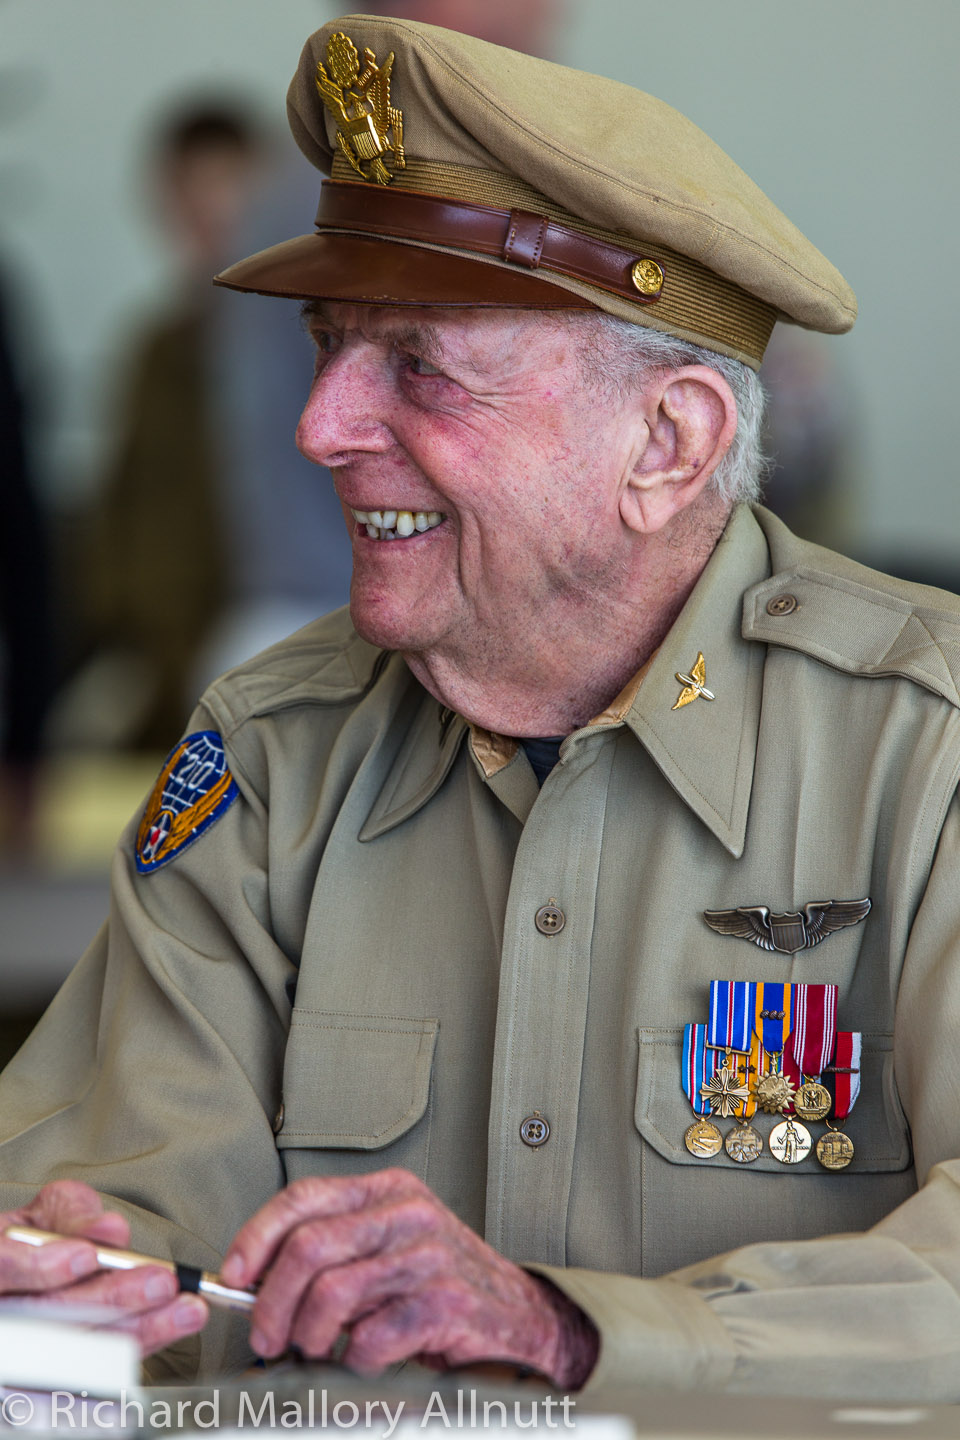 WWII Pacific Theatre combat veteran Jerry Yellin recounted his harrowing tale of flying his P-51 Mustang during the closing days of WWII, and the sadness of losing his wingman on the very last day of the war. (photo by Richard Mallory Allnutt)